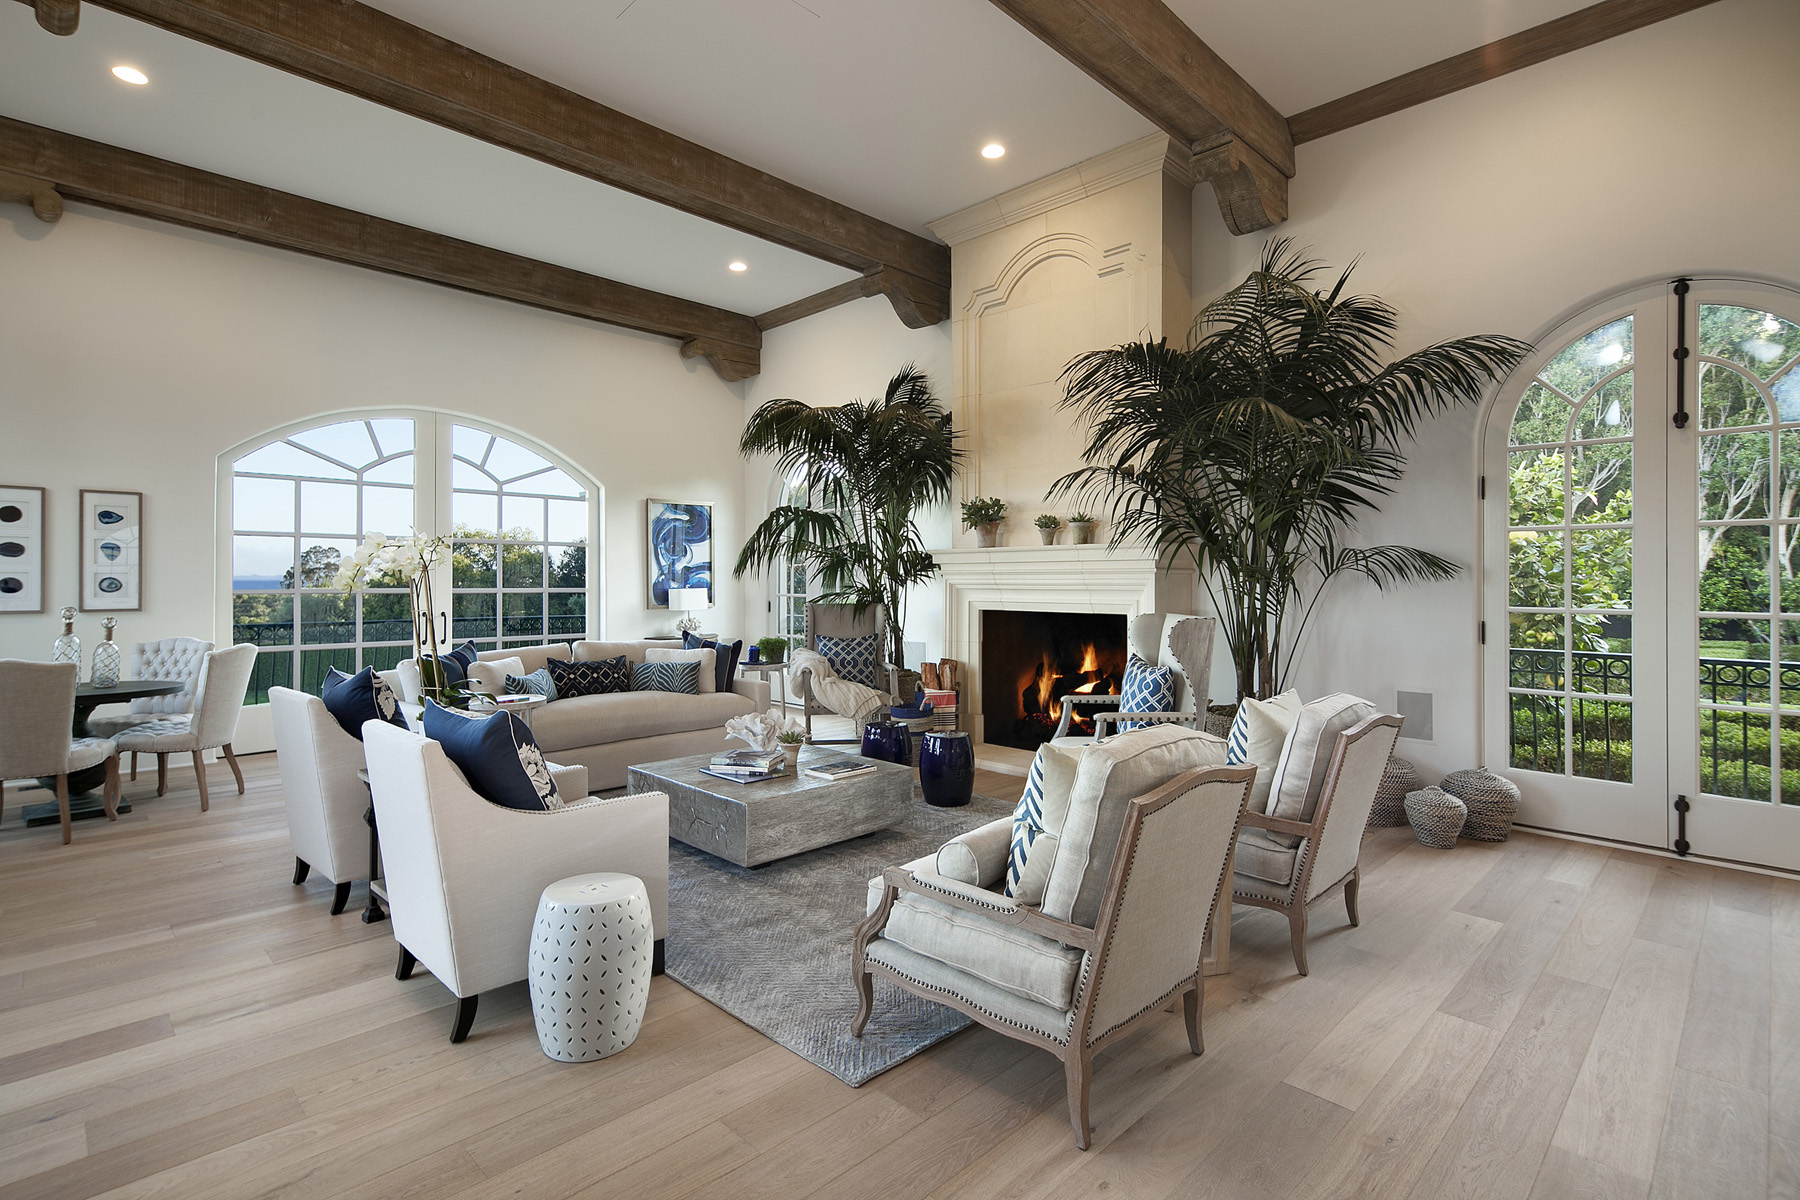 Elegant Living Room with Large Stone Fireplace and Ocean View